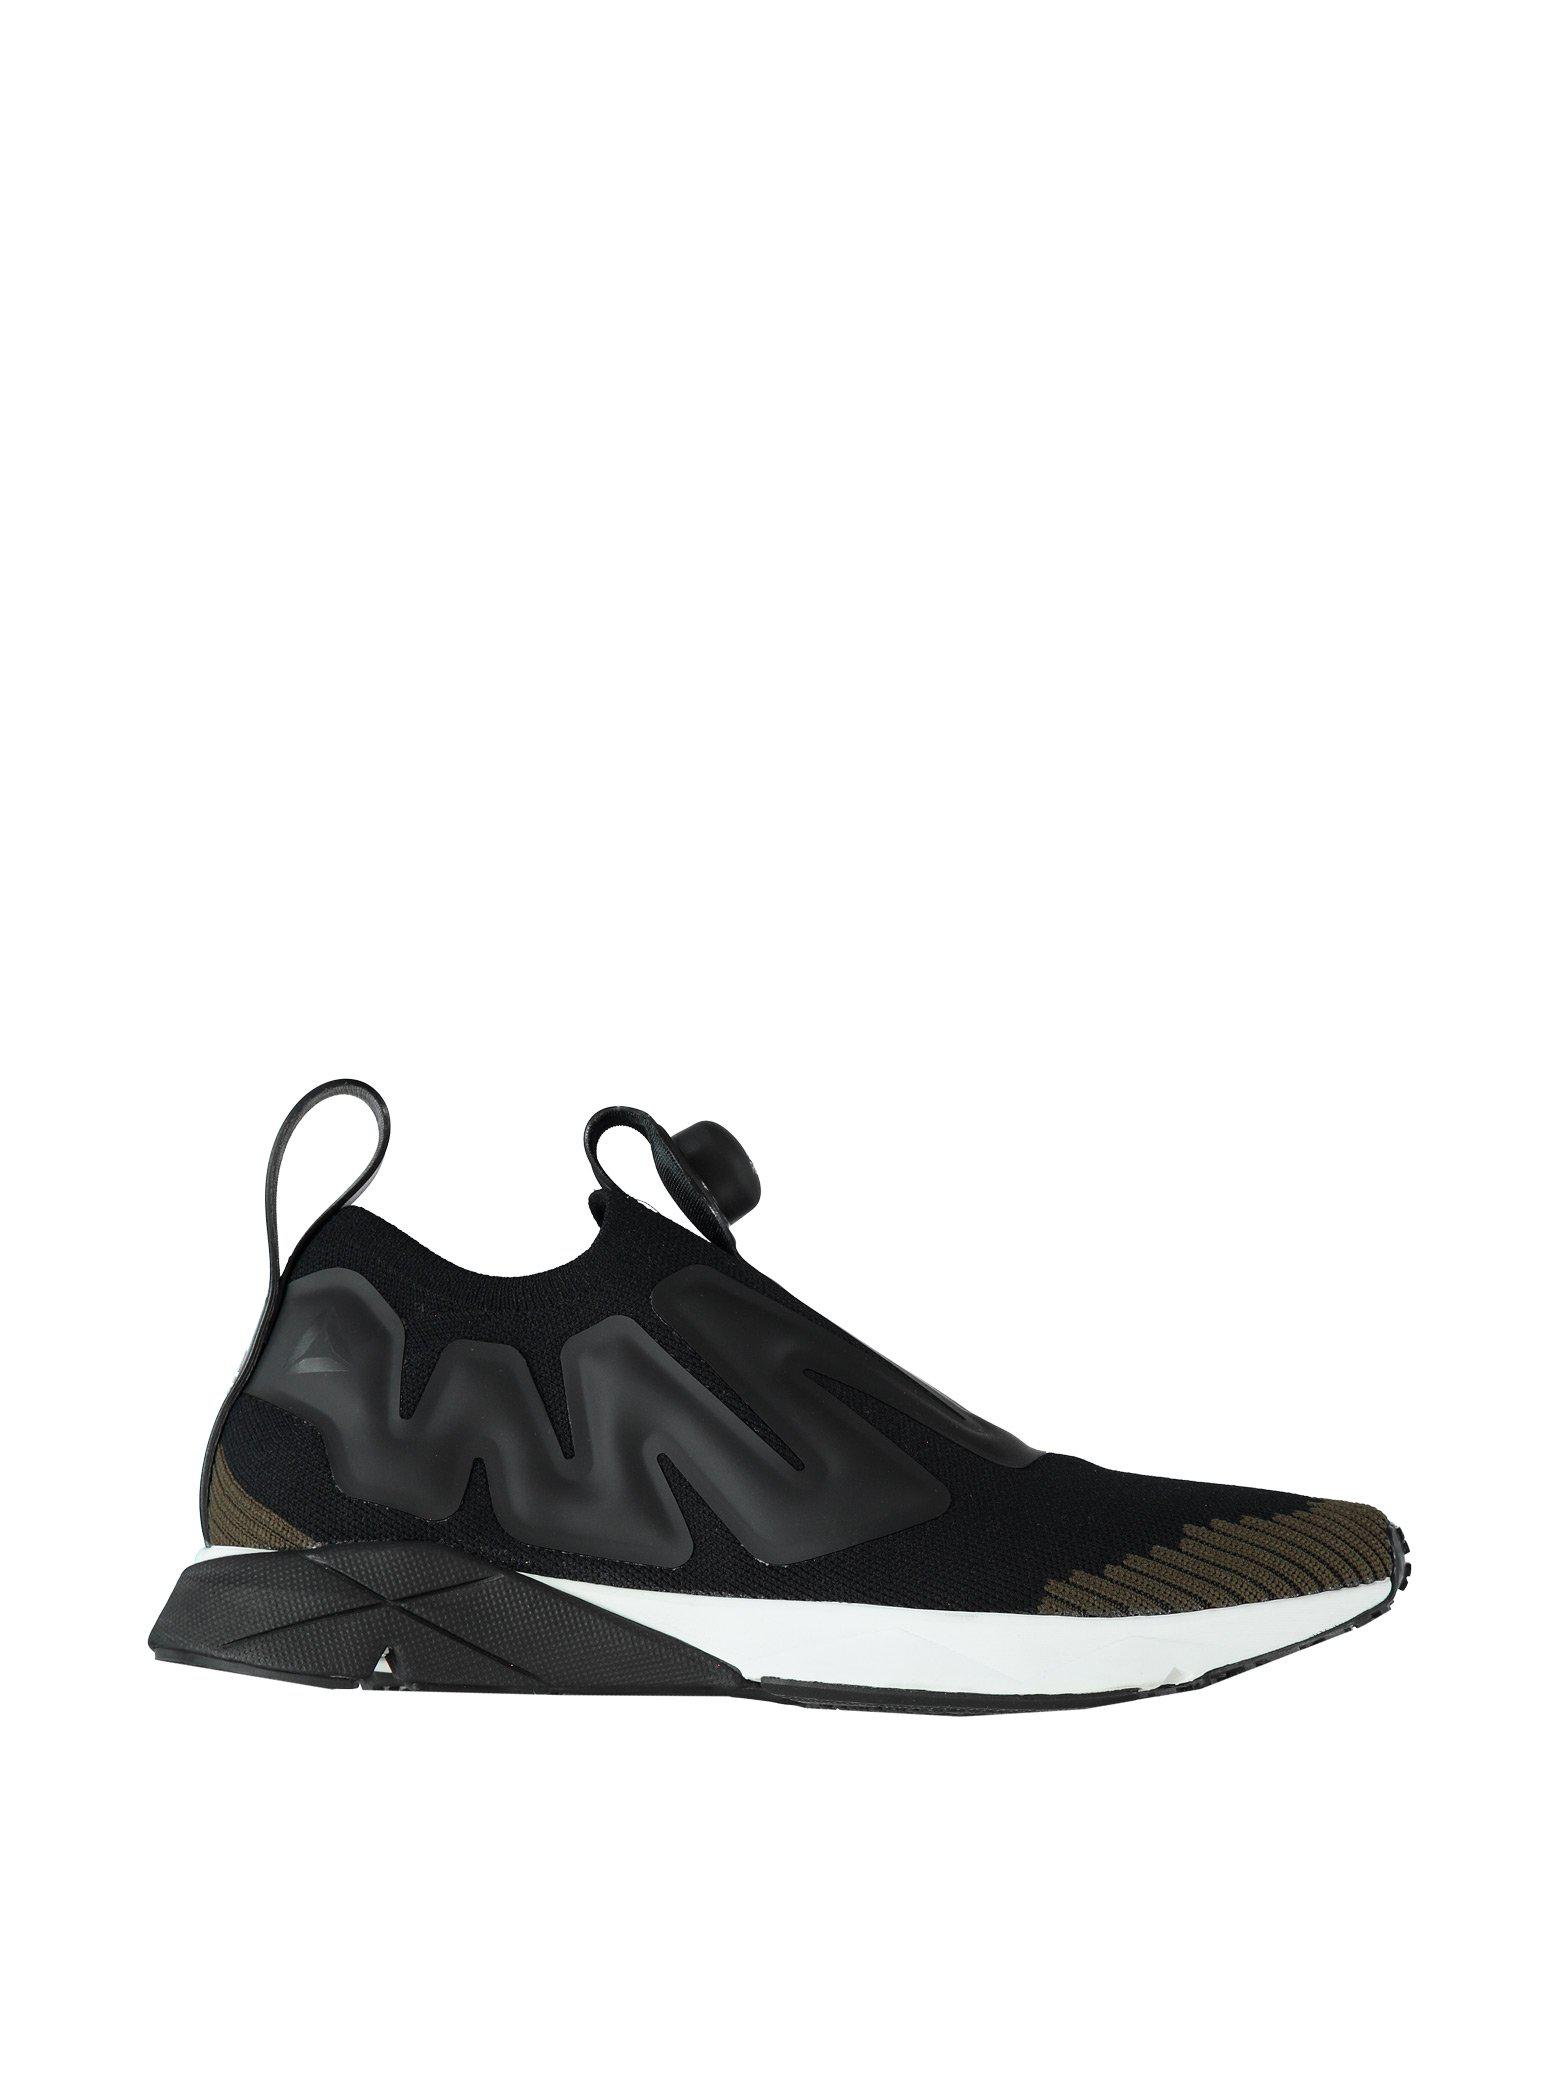 d36b5484539f1c Lyst - Reebok Pump Supreme Ultk in Black for Men